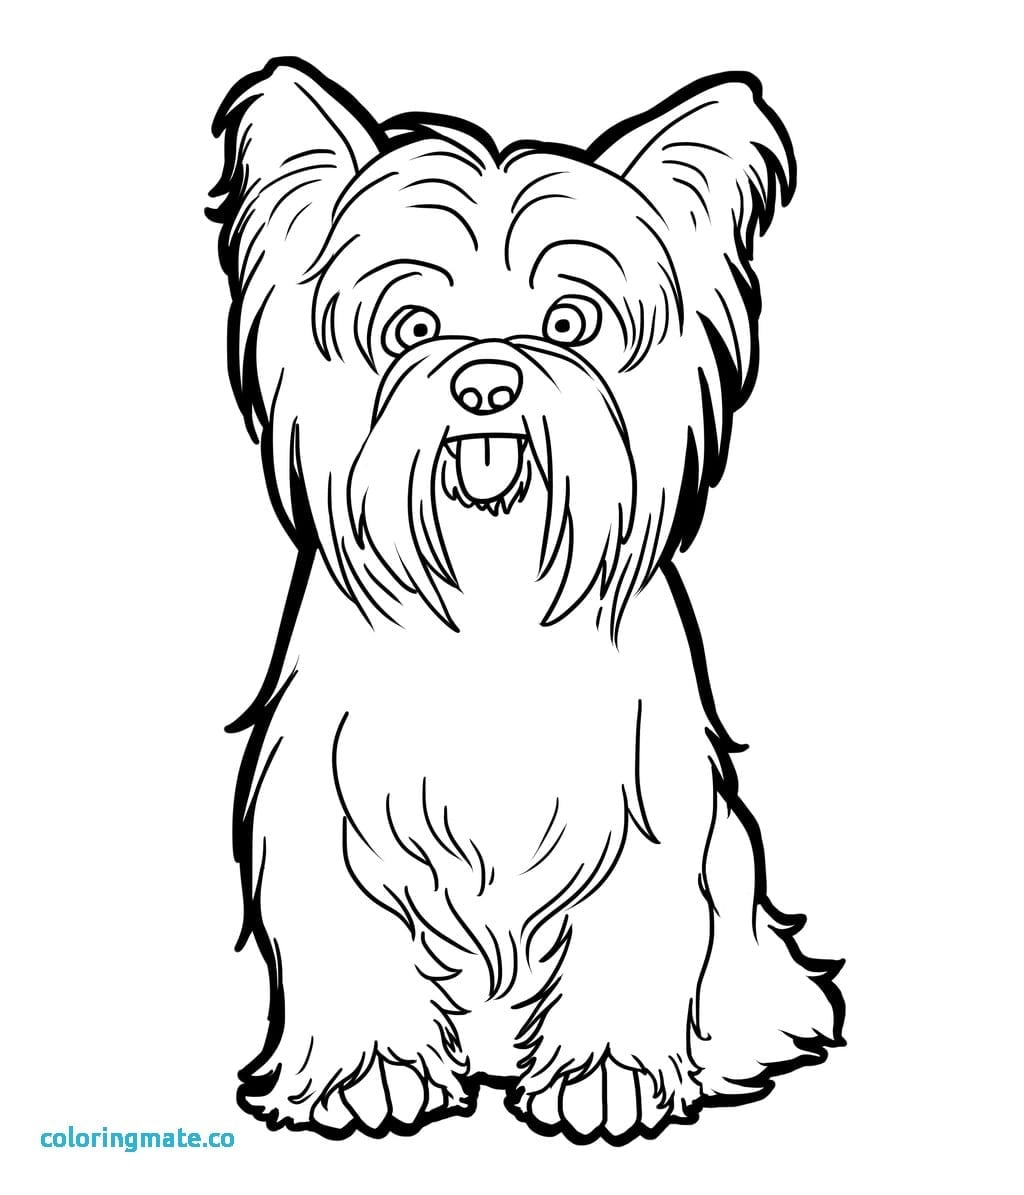 igloo coloring pages teachers - photo#31